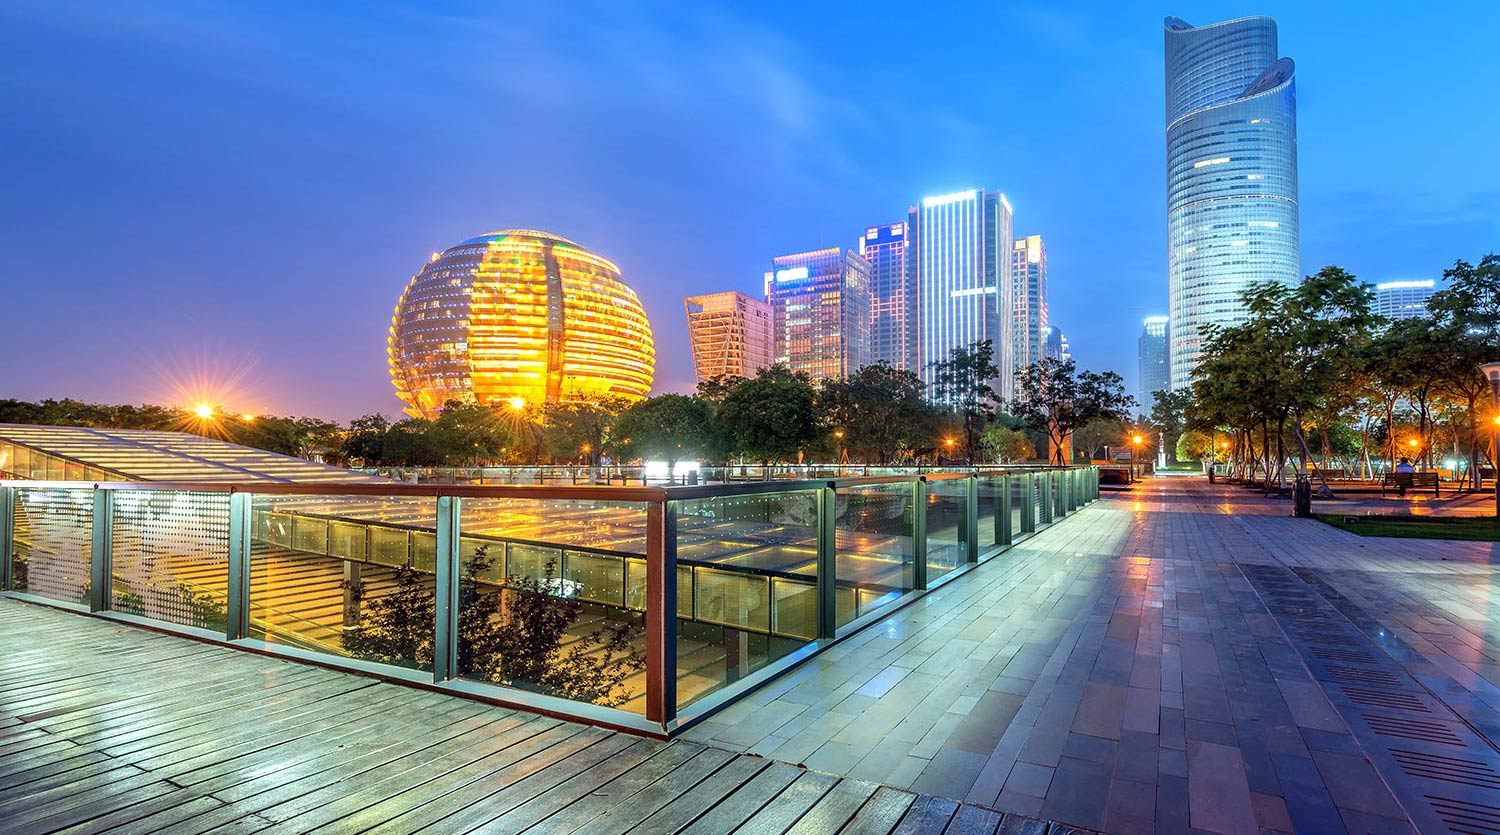 Urban buildings illuminated at dusk near a walkway in Hangzhou